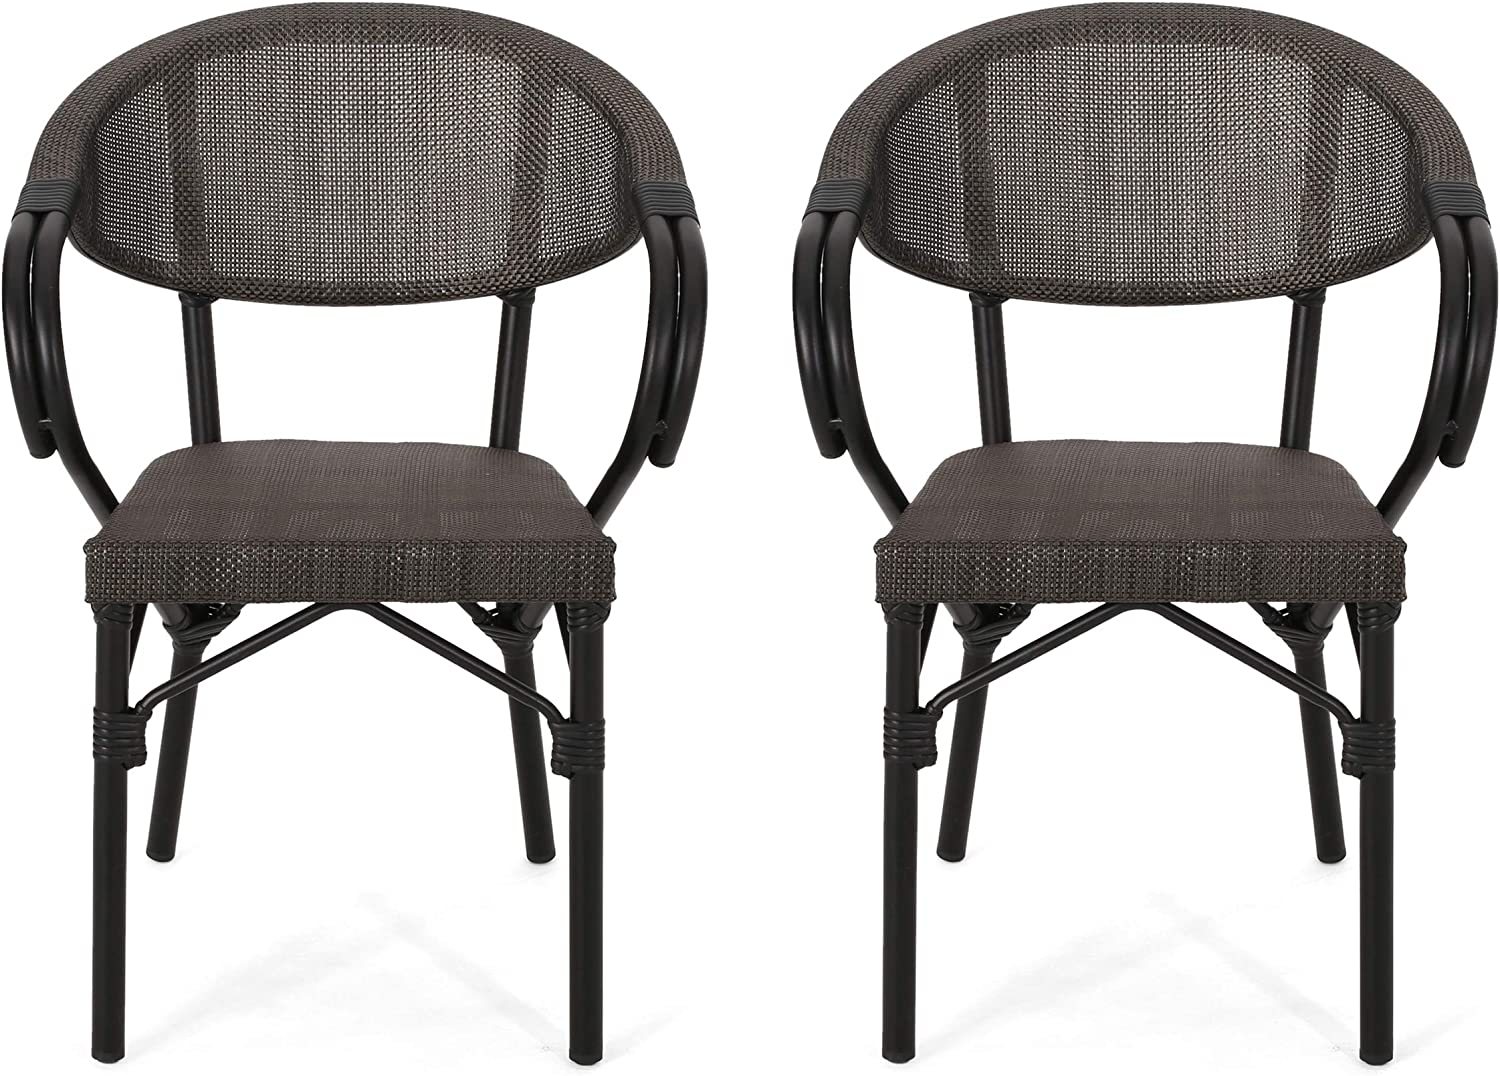 Christopher Knight Home 312342 Wendsy Outdoor Cafe Chair (Set of 2), Black, Dark Brown